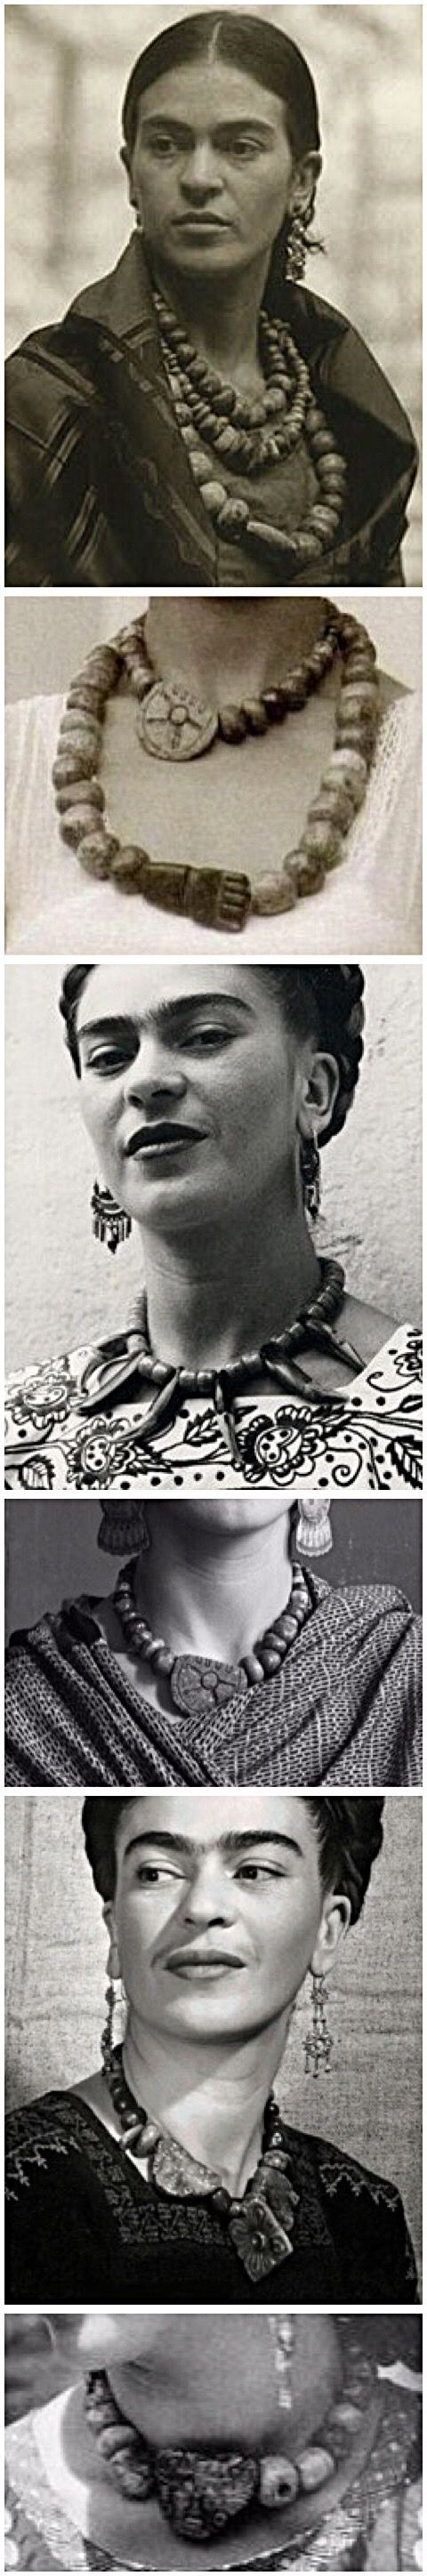 Frida Kahlo wearing necklaces of ancient pre-Columbian beads and pendants, mostly jade, jaguar teeth, etc.